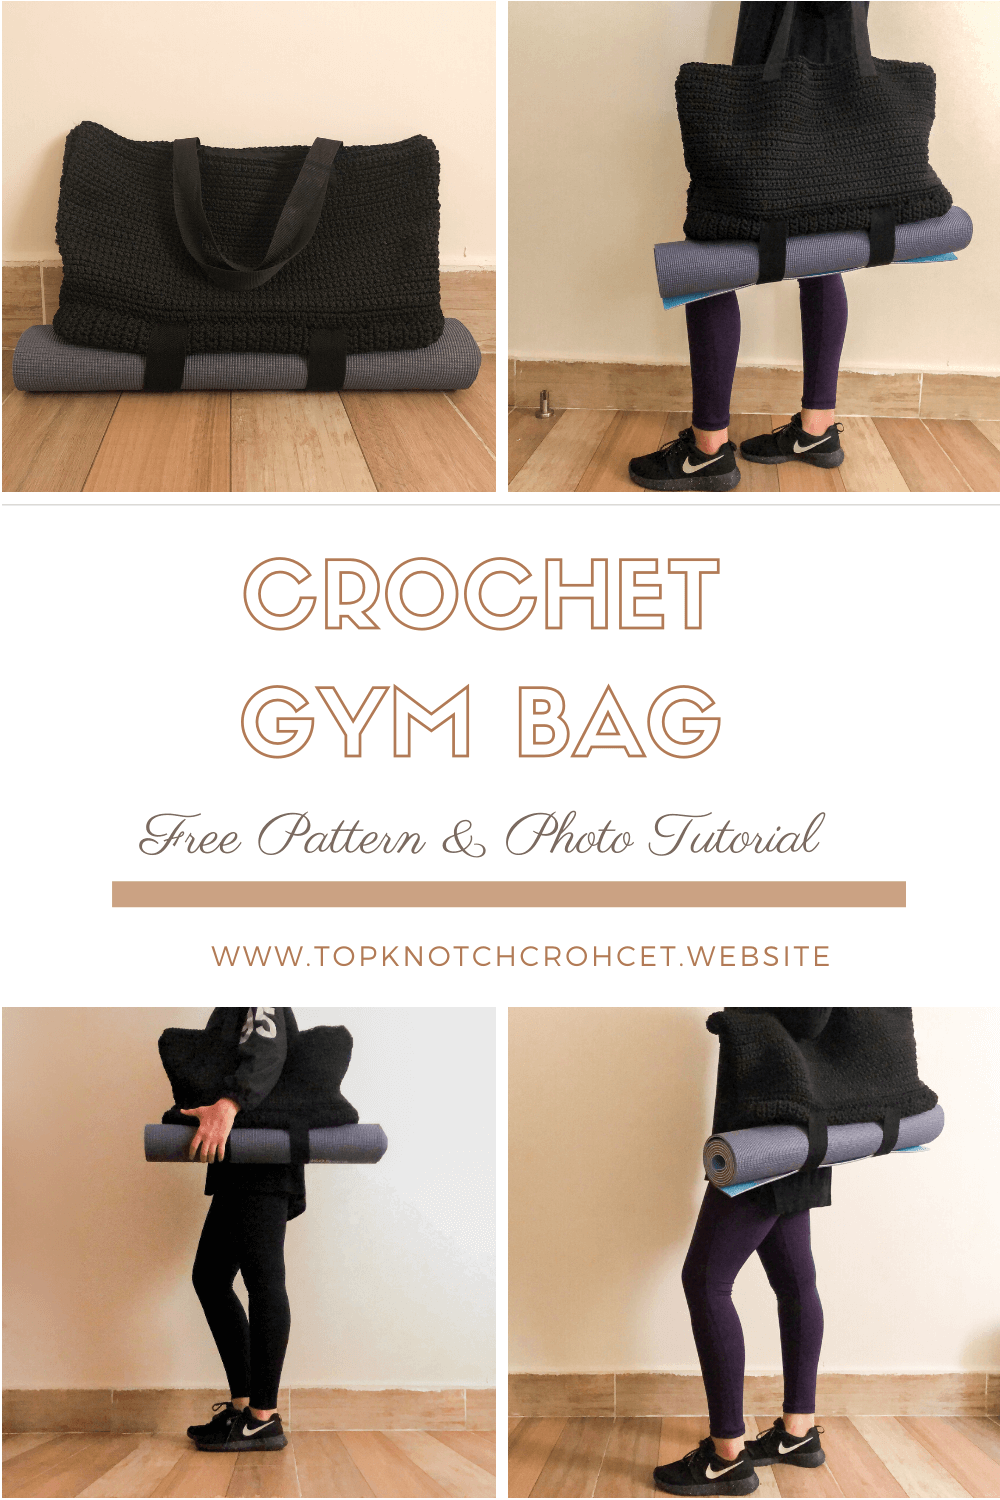 Crochet Gym Bag- Free Pattern & Photo Tutorial